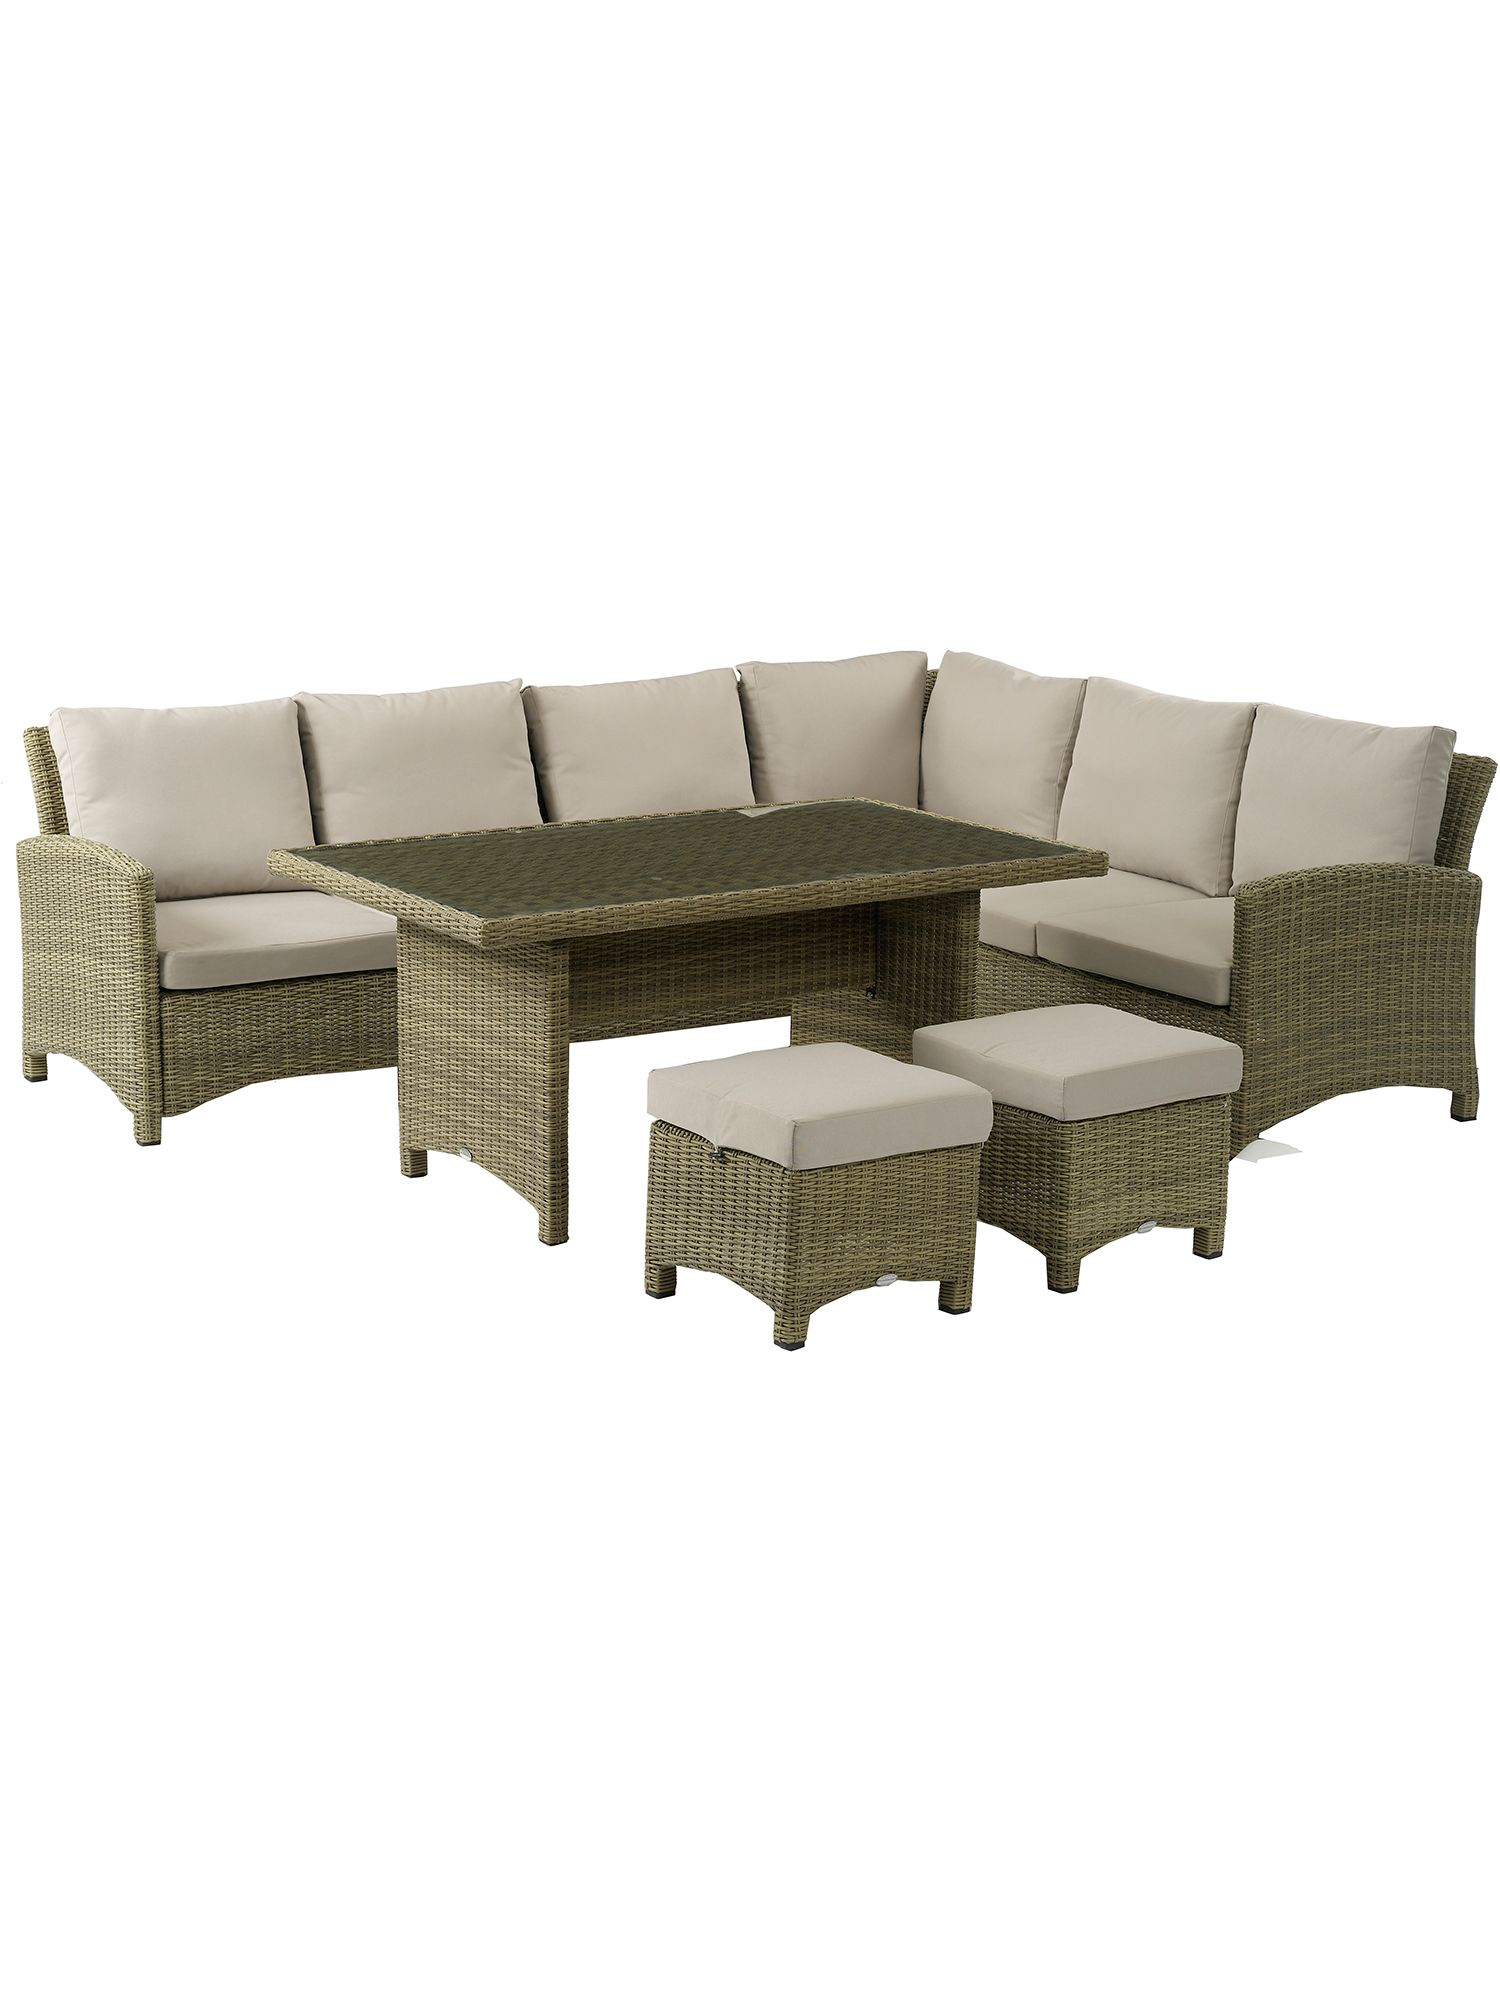 Image of Bramblecrest Cotswold modular sofa with dining table & stools